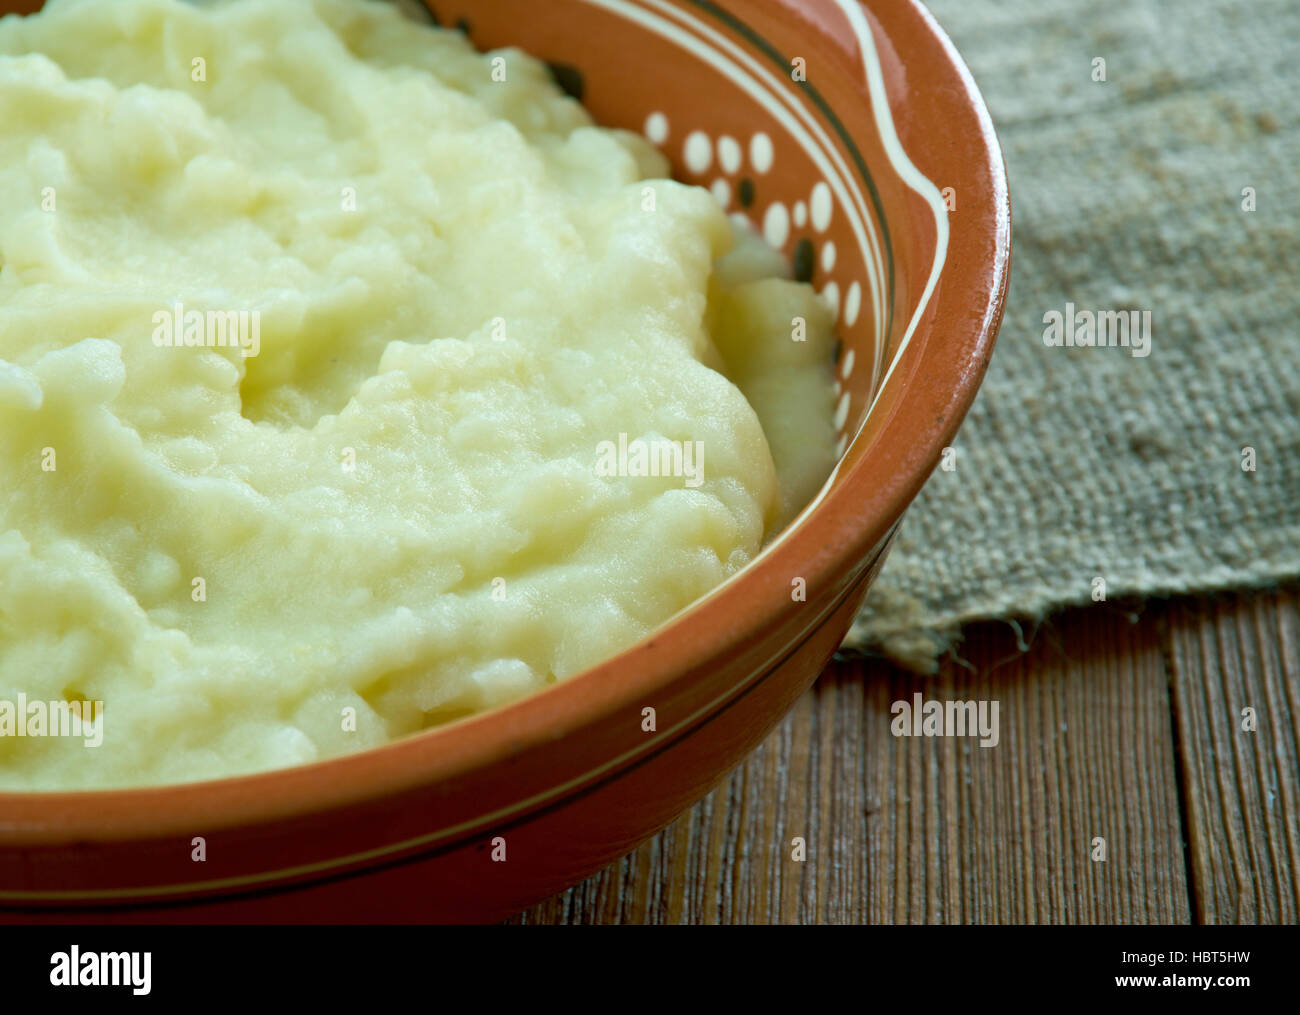 Tolcha - Belarusian mashed potatoes with milk, bacon - Stock Image